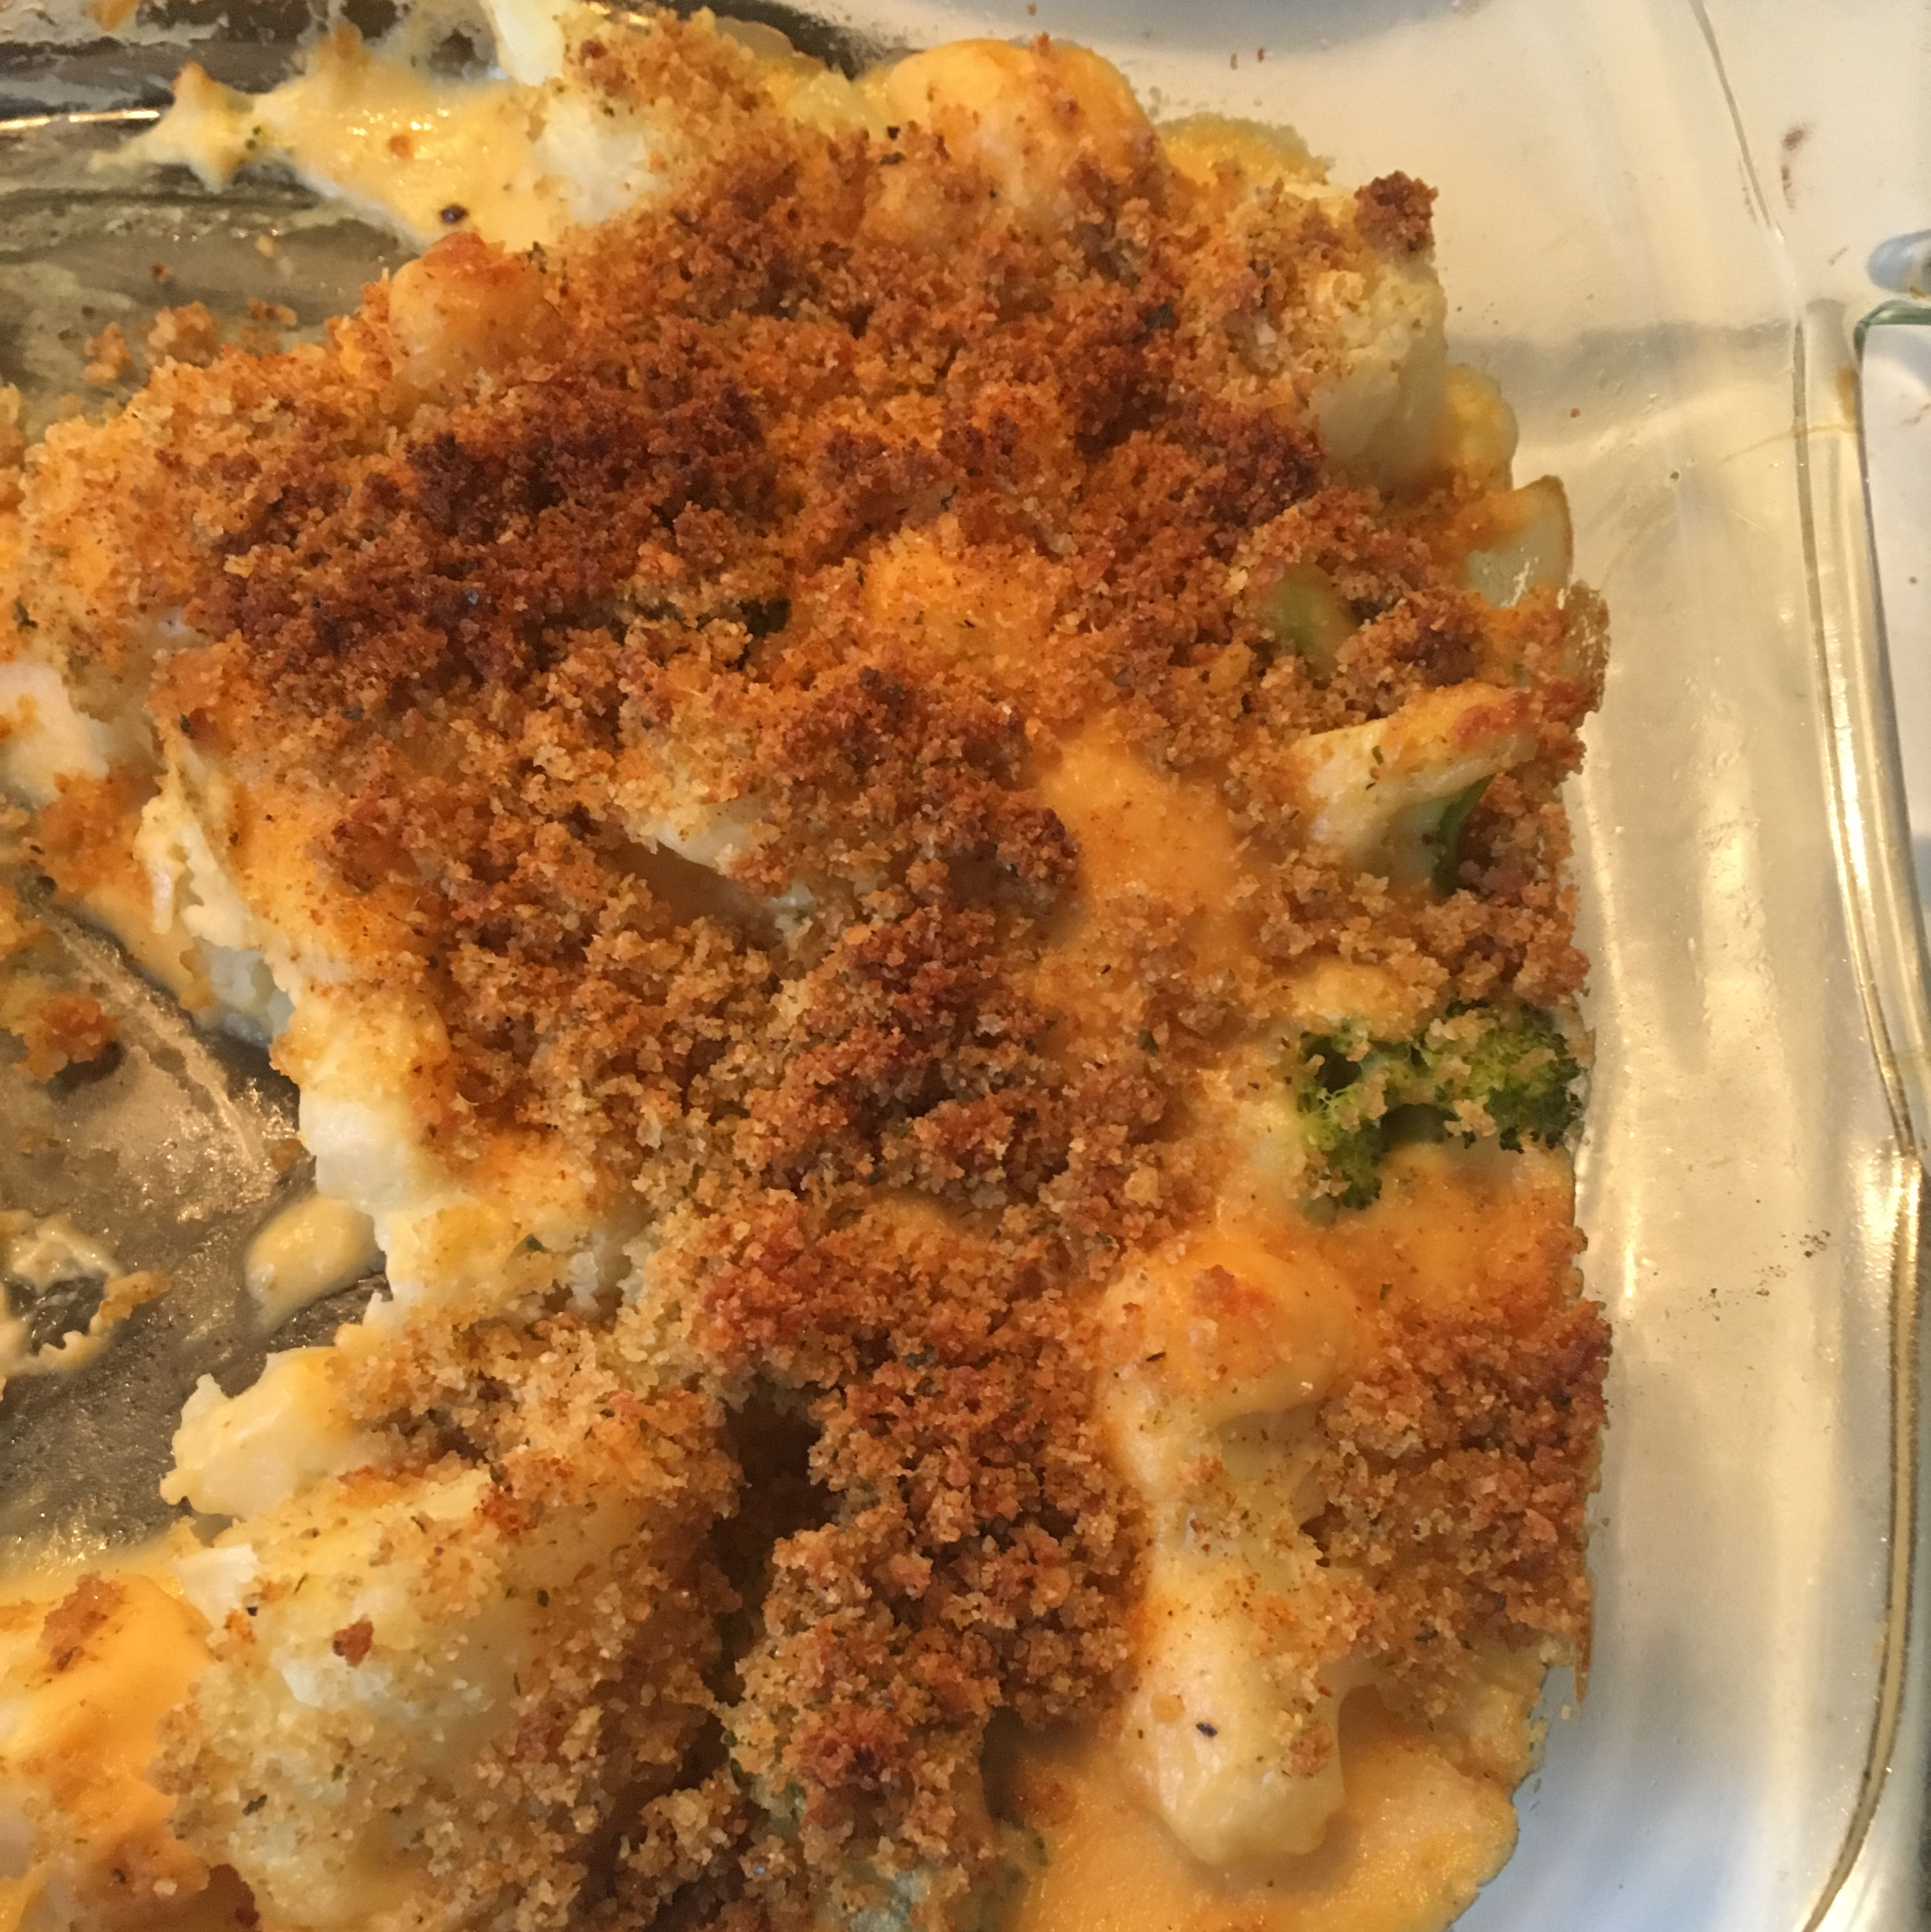 Broccoli and Cauliflower Gratin Brooklyn Idalski